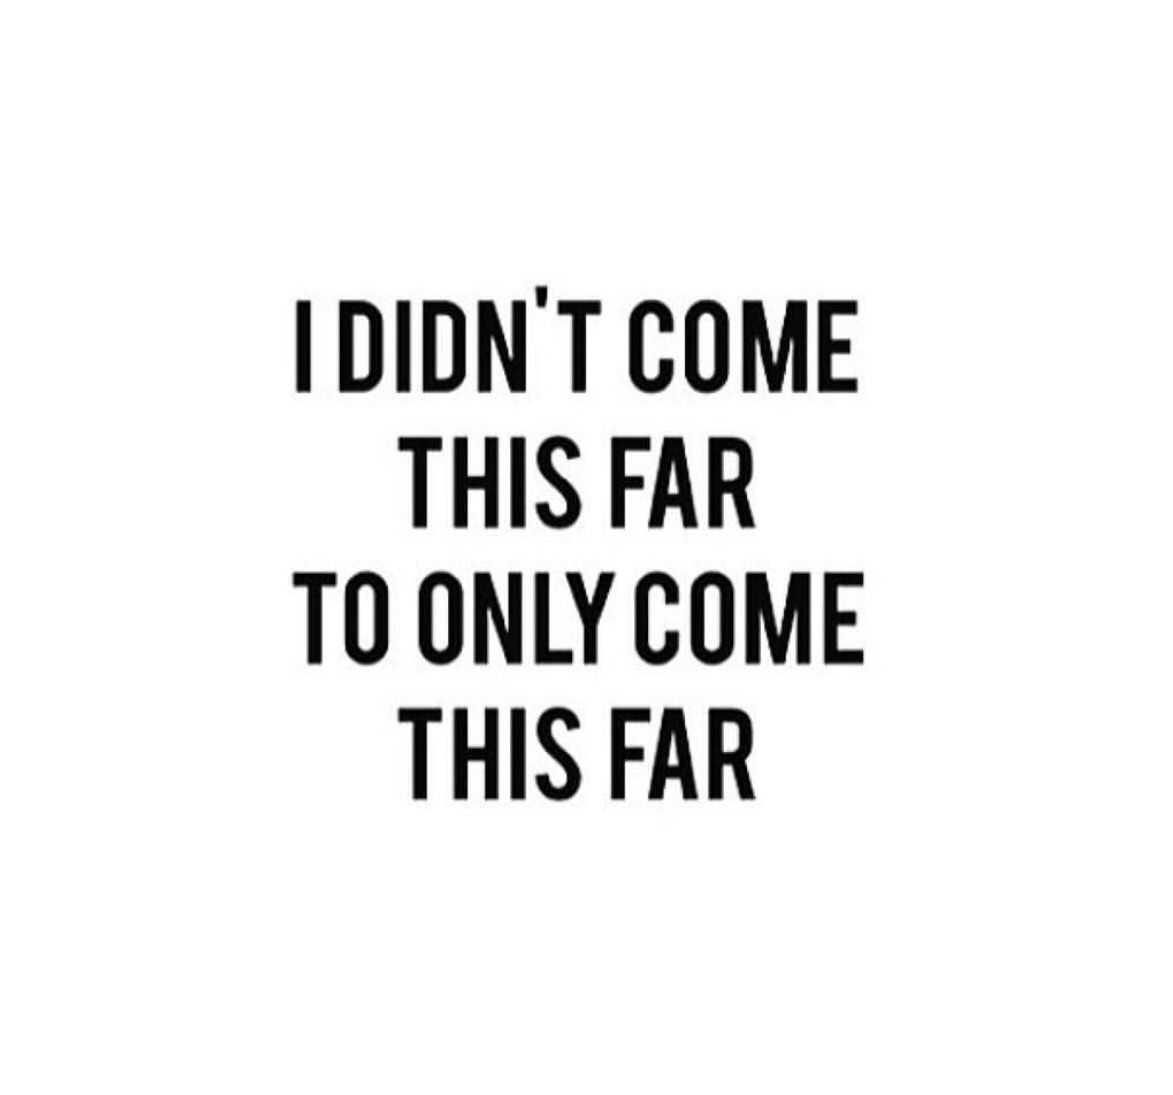 I Didn T Come This Far Only To Come This Far Motivational Quotes Quotable Quotes Quotes To Live By